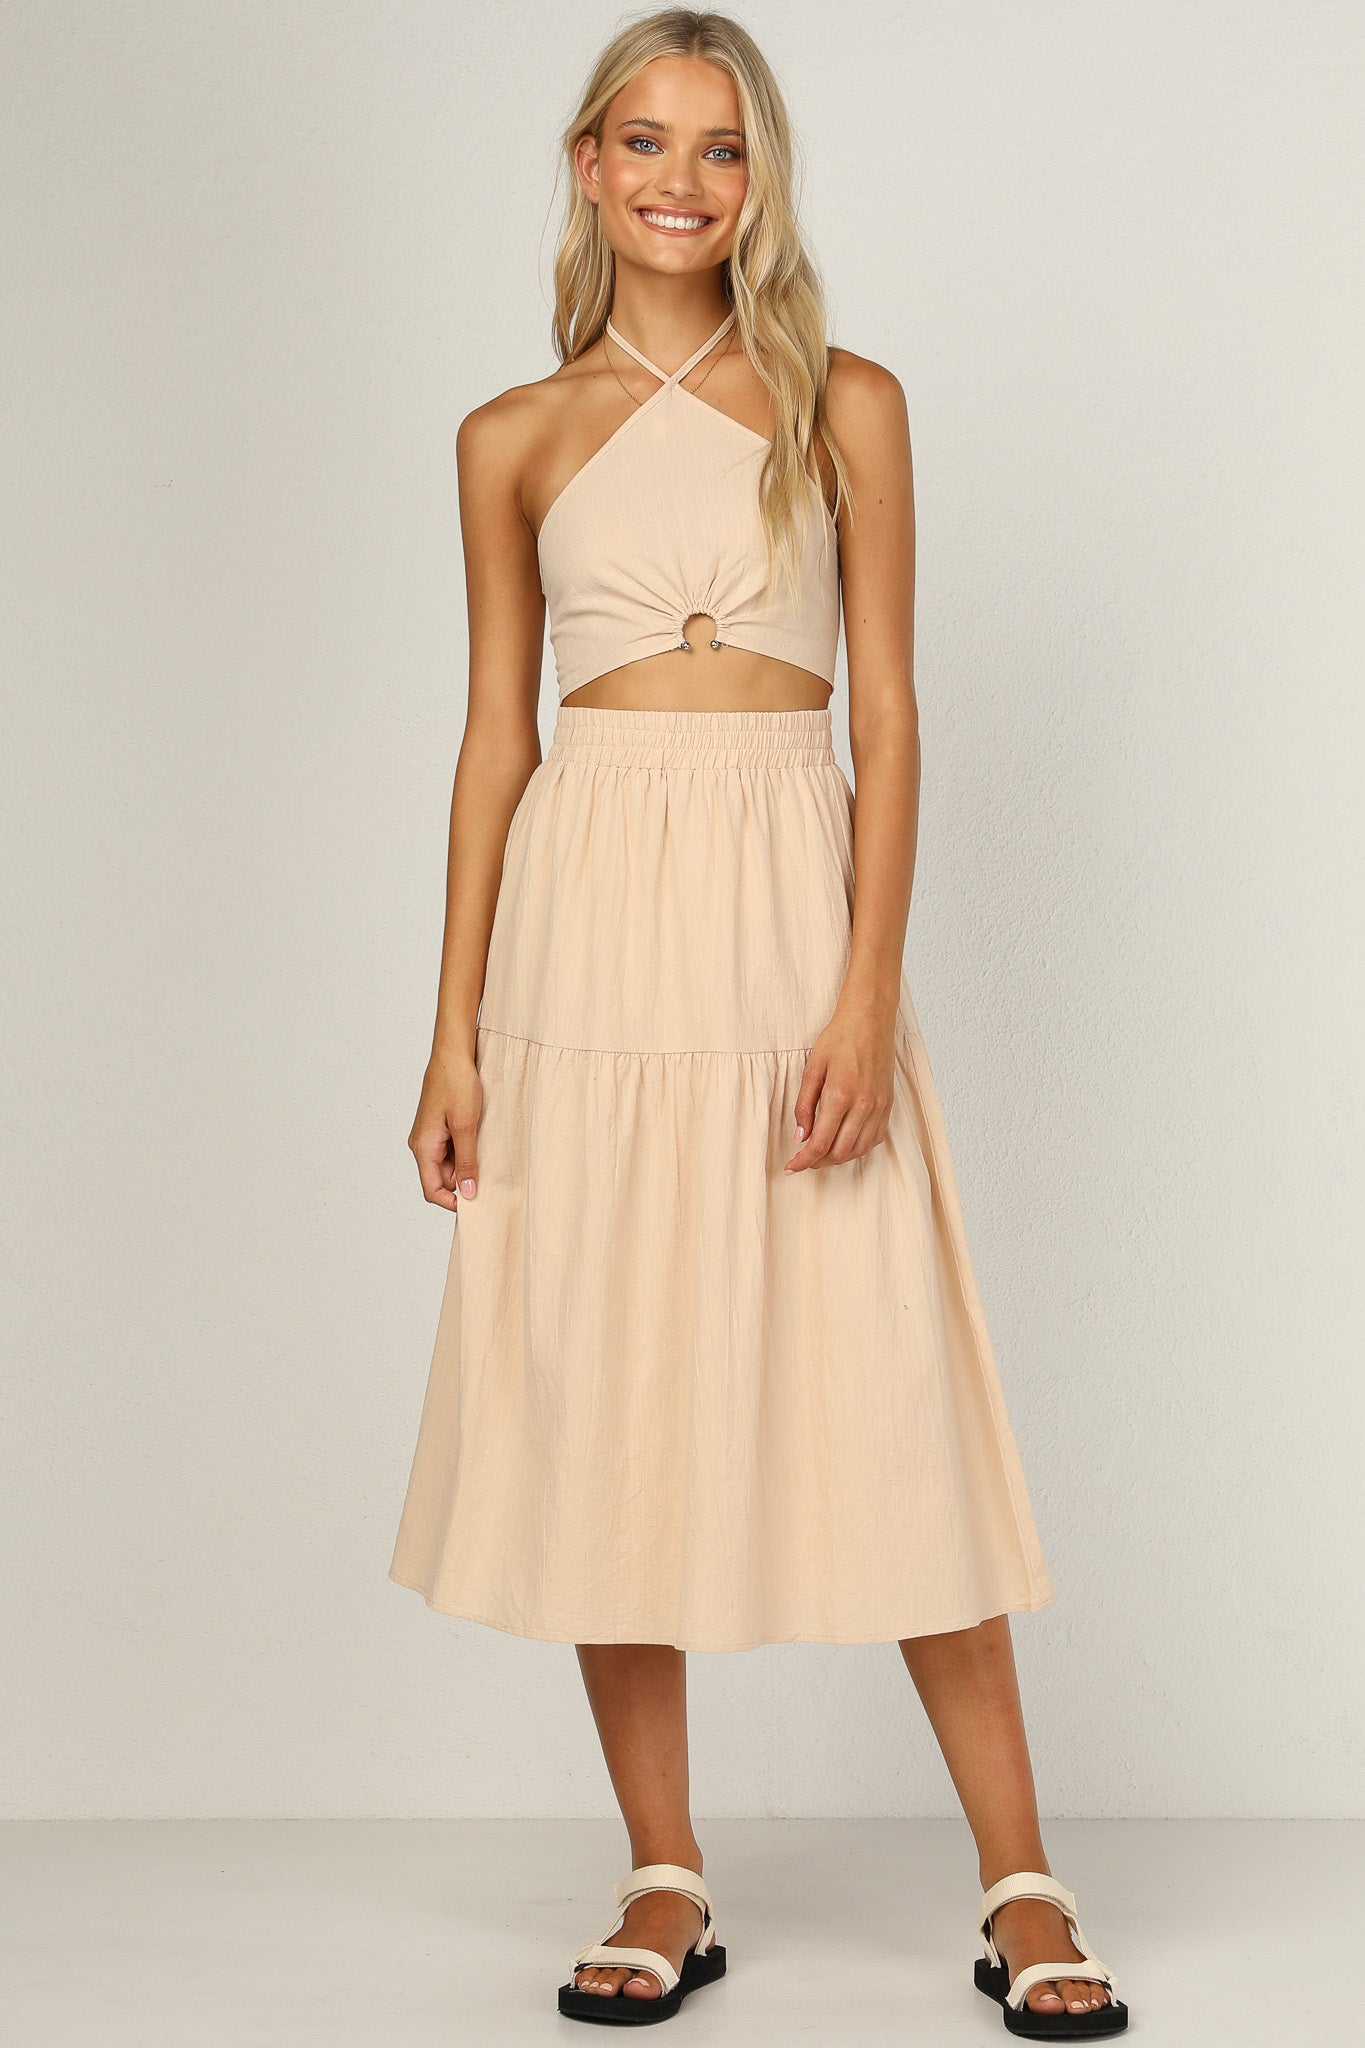 Liberation Midi Skirt (Beige)